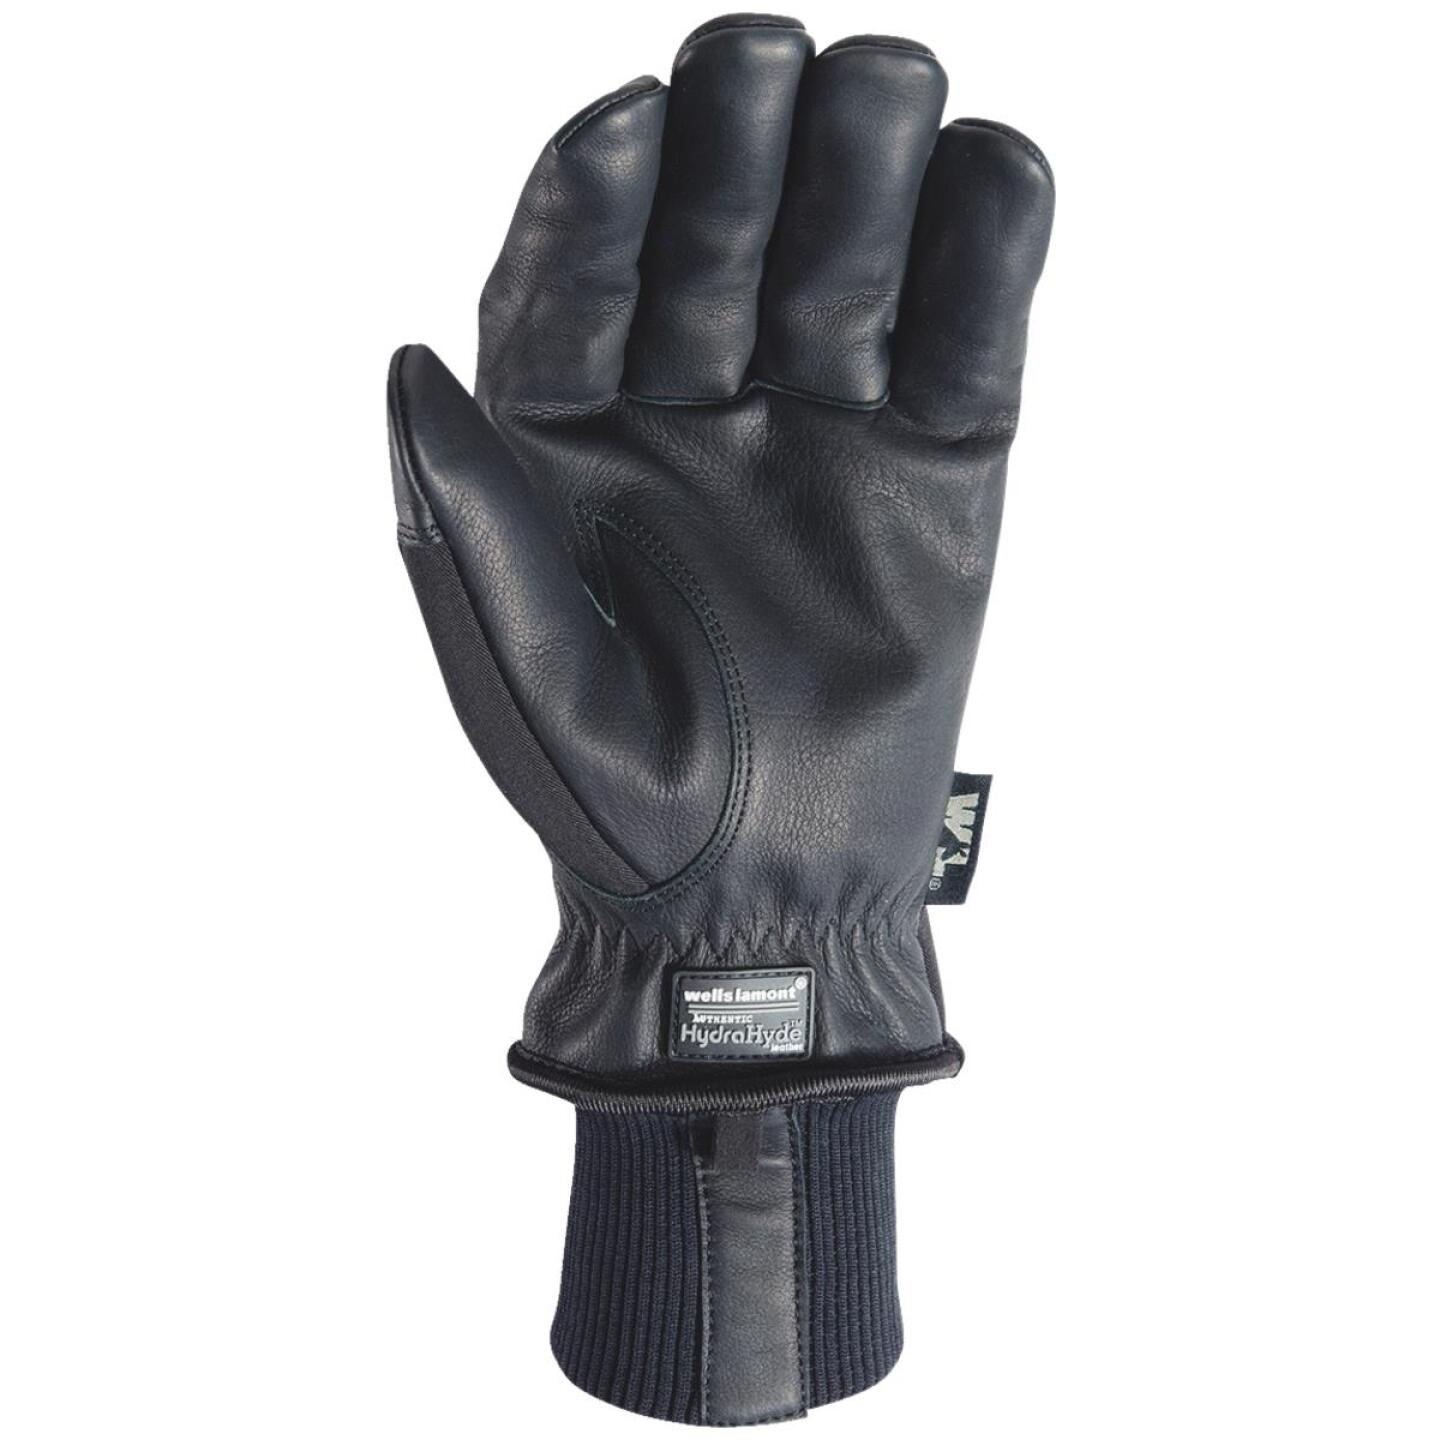 Wells Lamont HydraHyde Men's Large Grain Goatskin Black Insulated Work Glove Image 2